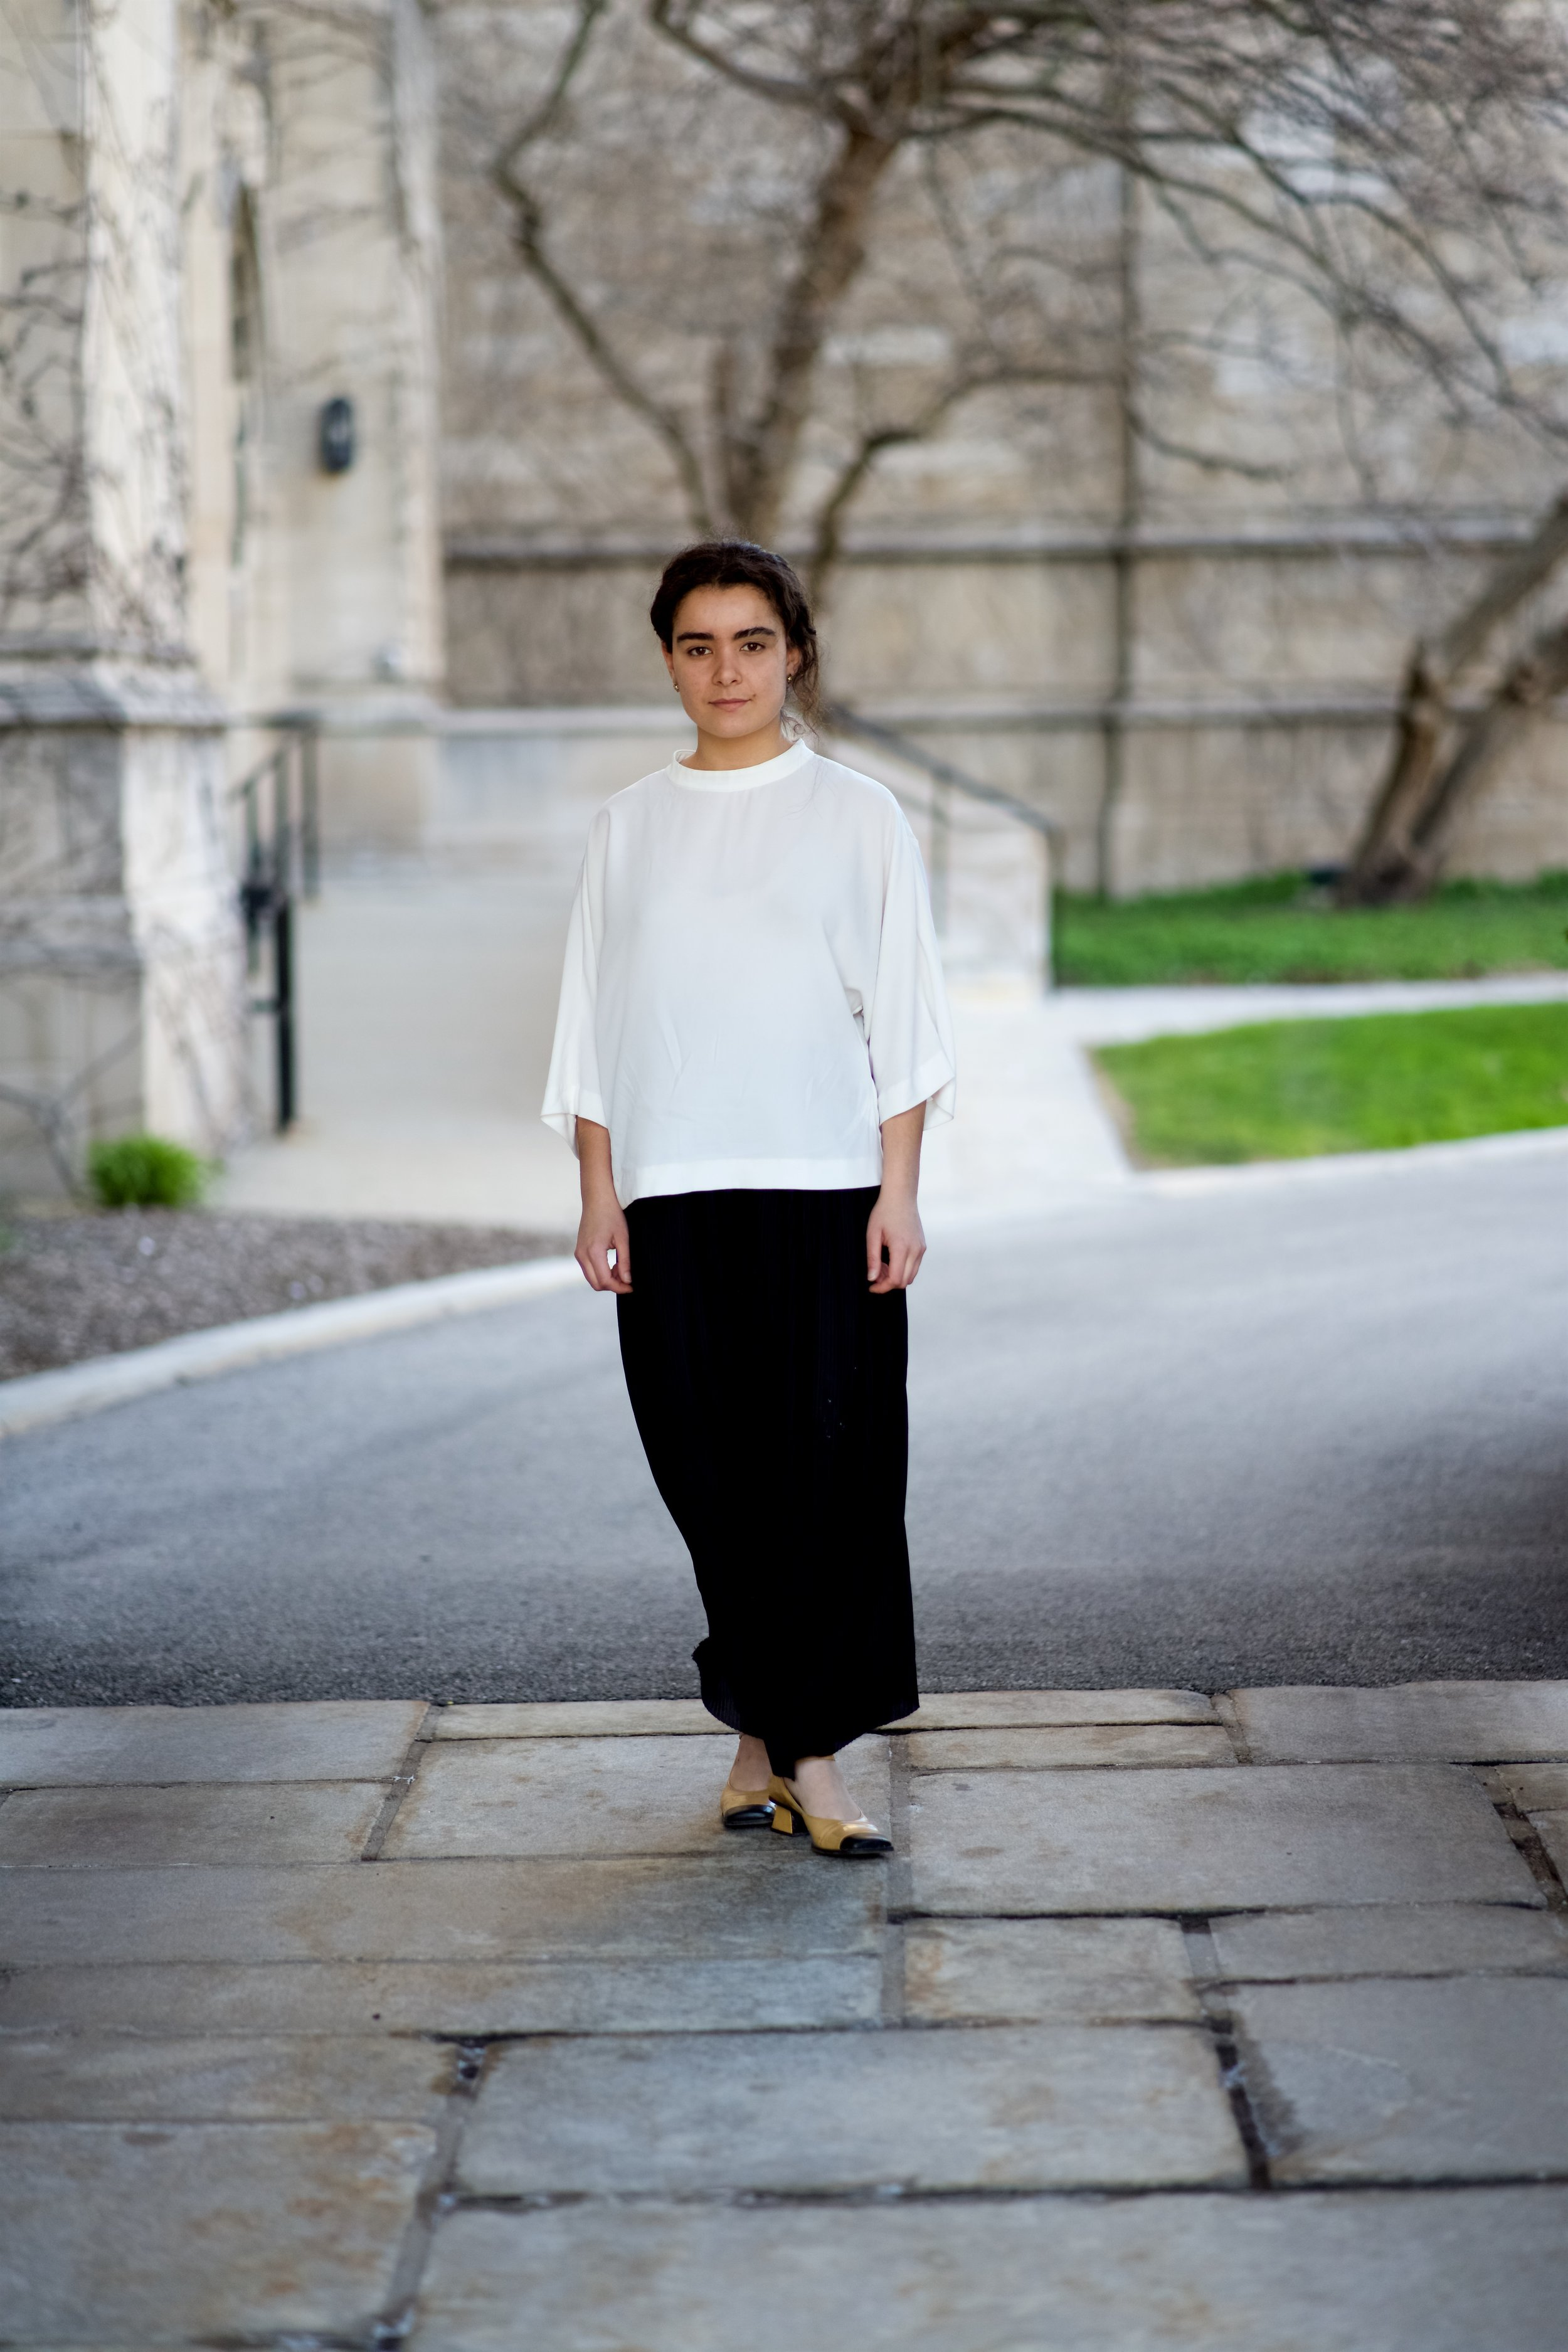 I'm black ribbed flowy wide-leg trousers (thrifted),a Uniqlo white mock neck short-sleeve shirt and Miu Miu shoes (thrifted).